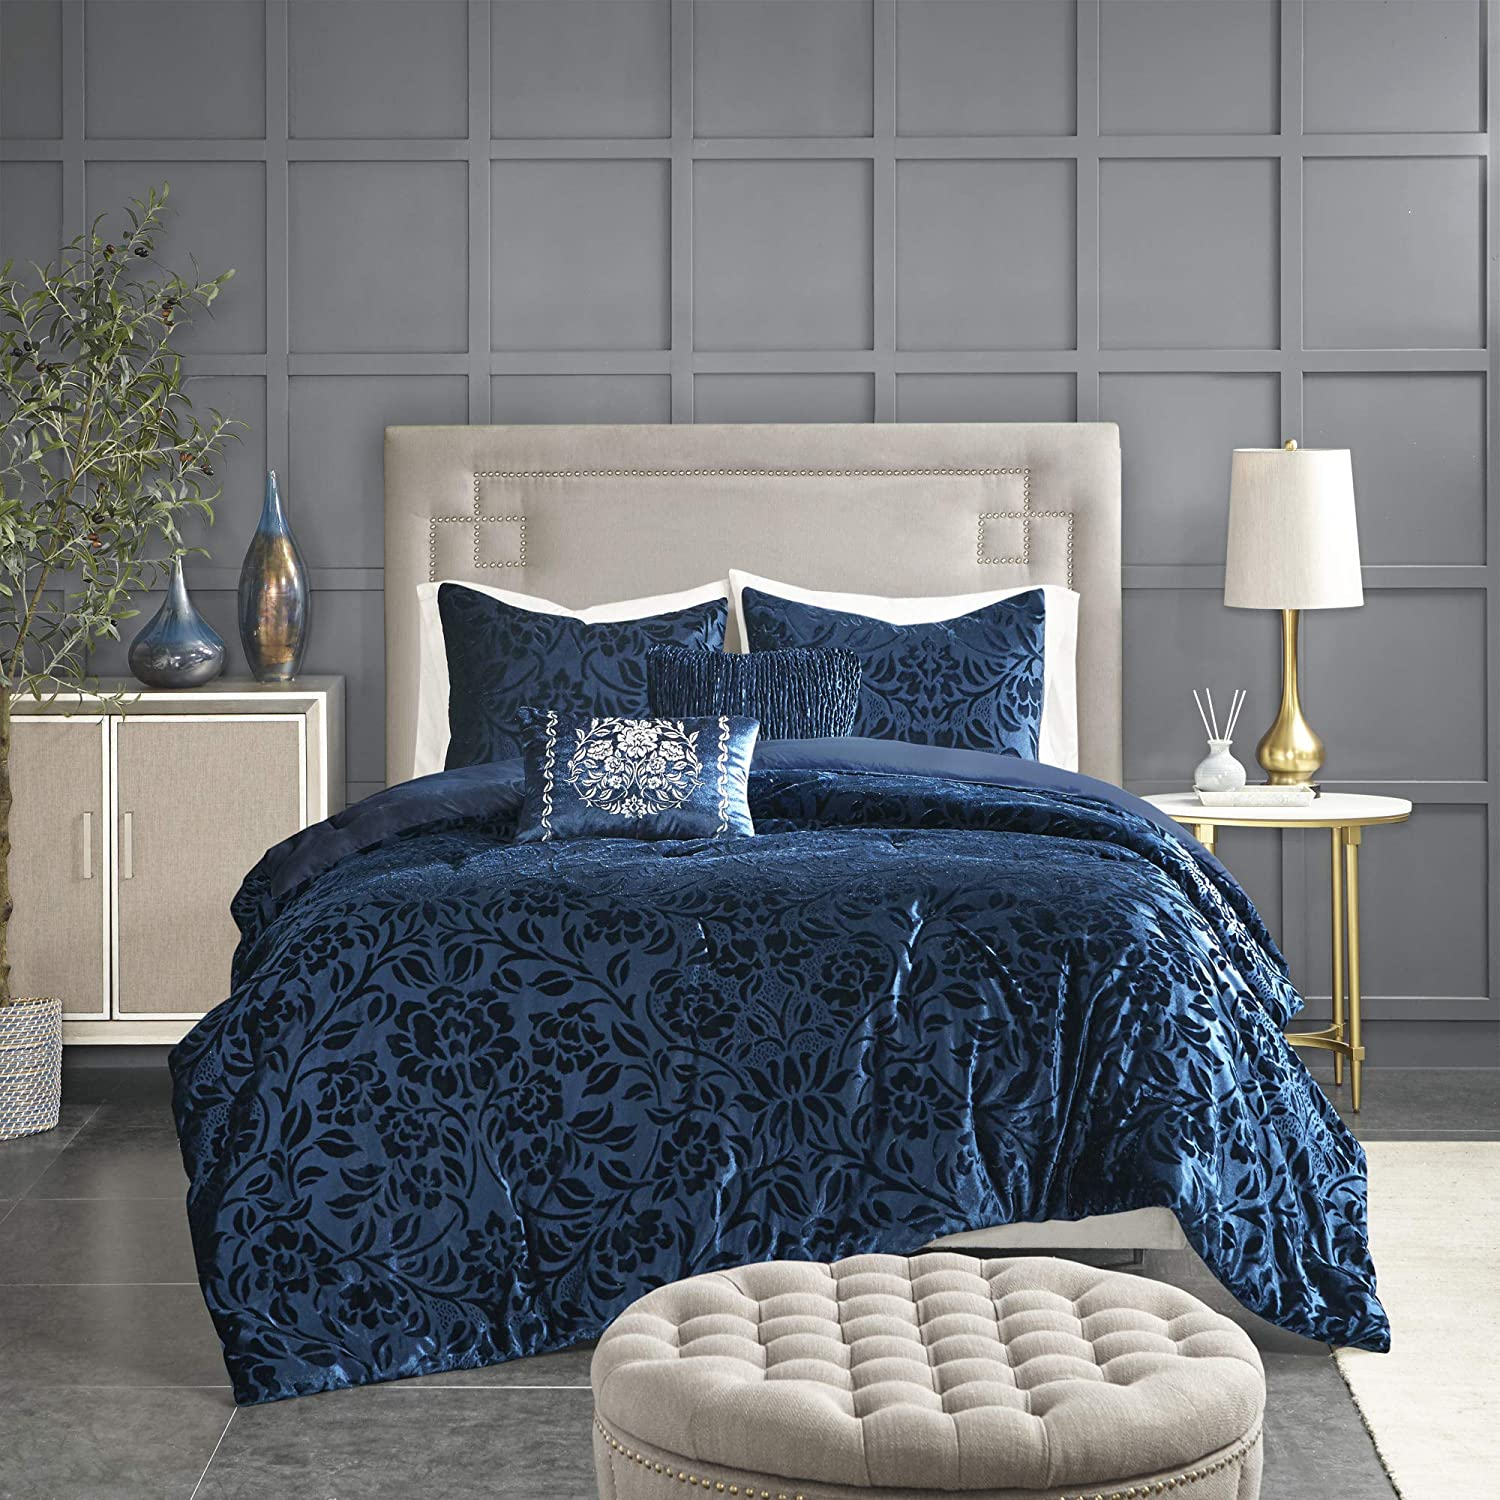 amazon com madison park irene faux velvet comforter embossed floral design modern luxe all season down alternative bed set with matching shams decorative pillows queen 90 x90 teal home kitchen madison park irene faux velvet comforter embossed floral design modern luxe all season down alternative bed set with matching shams decorative